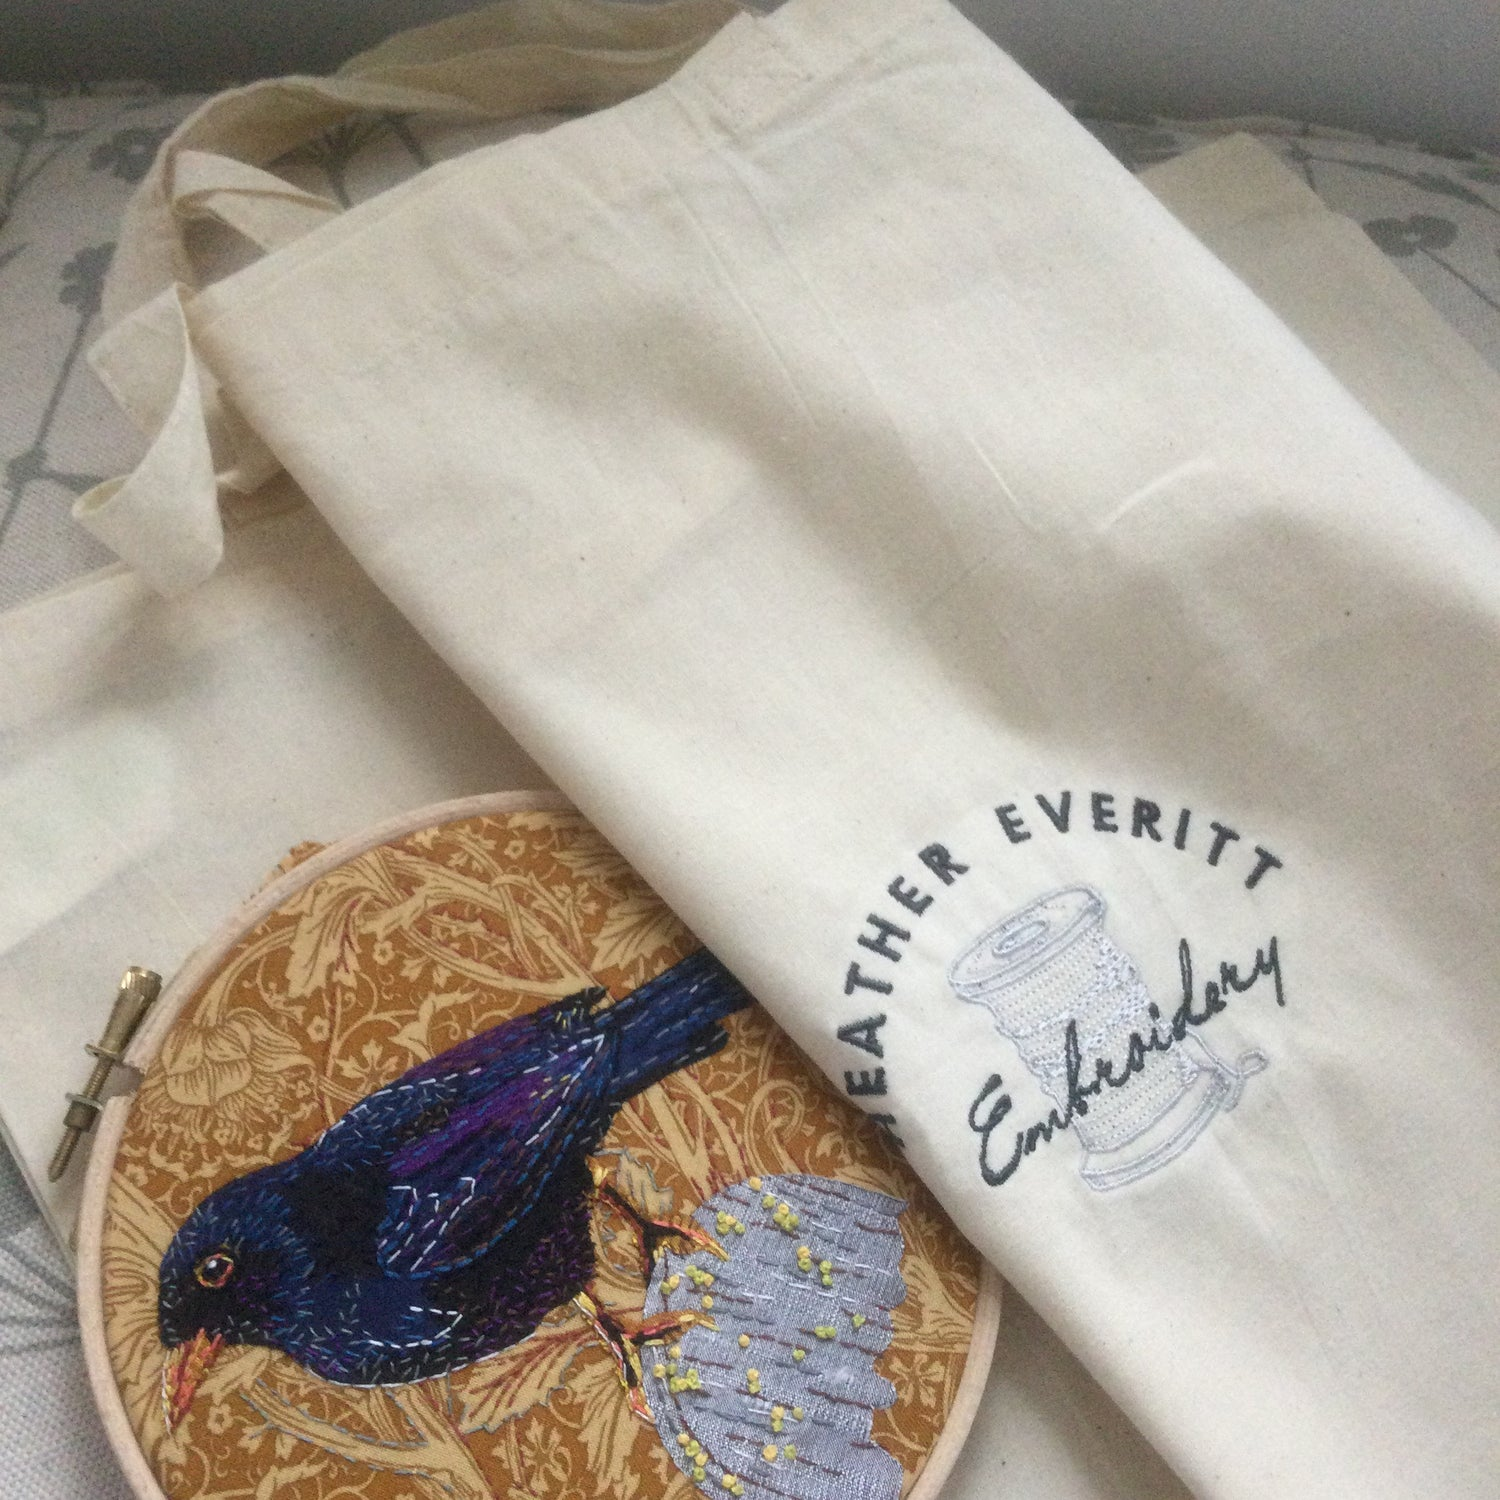 Image of Puffin applique and hand embroidery kit in linen and silk.